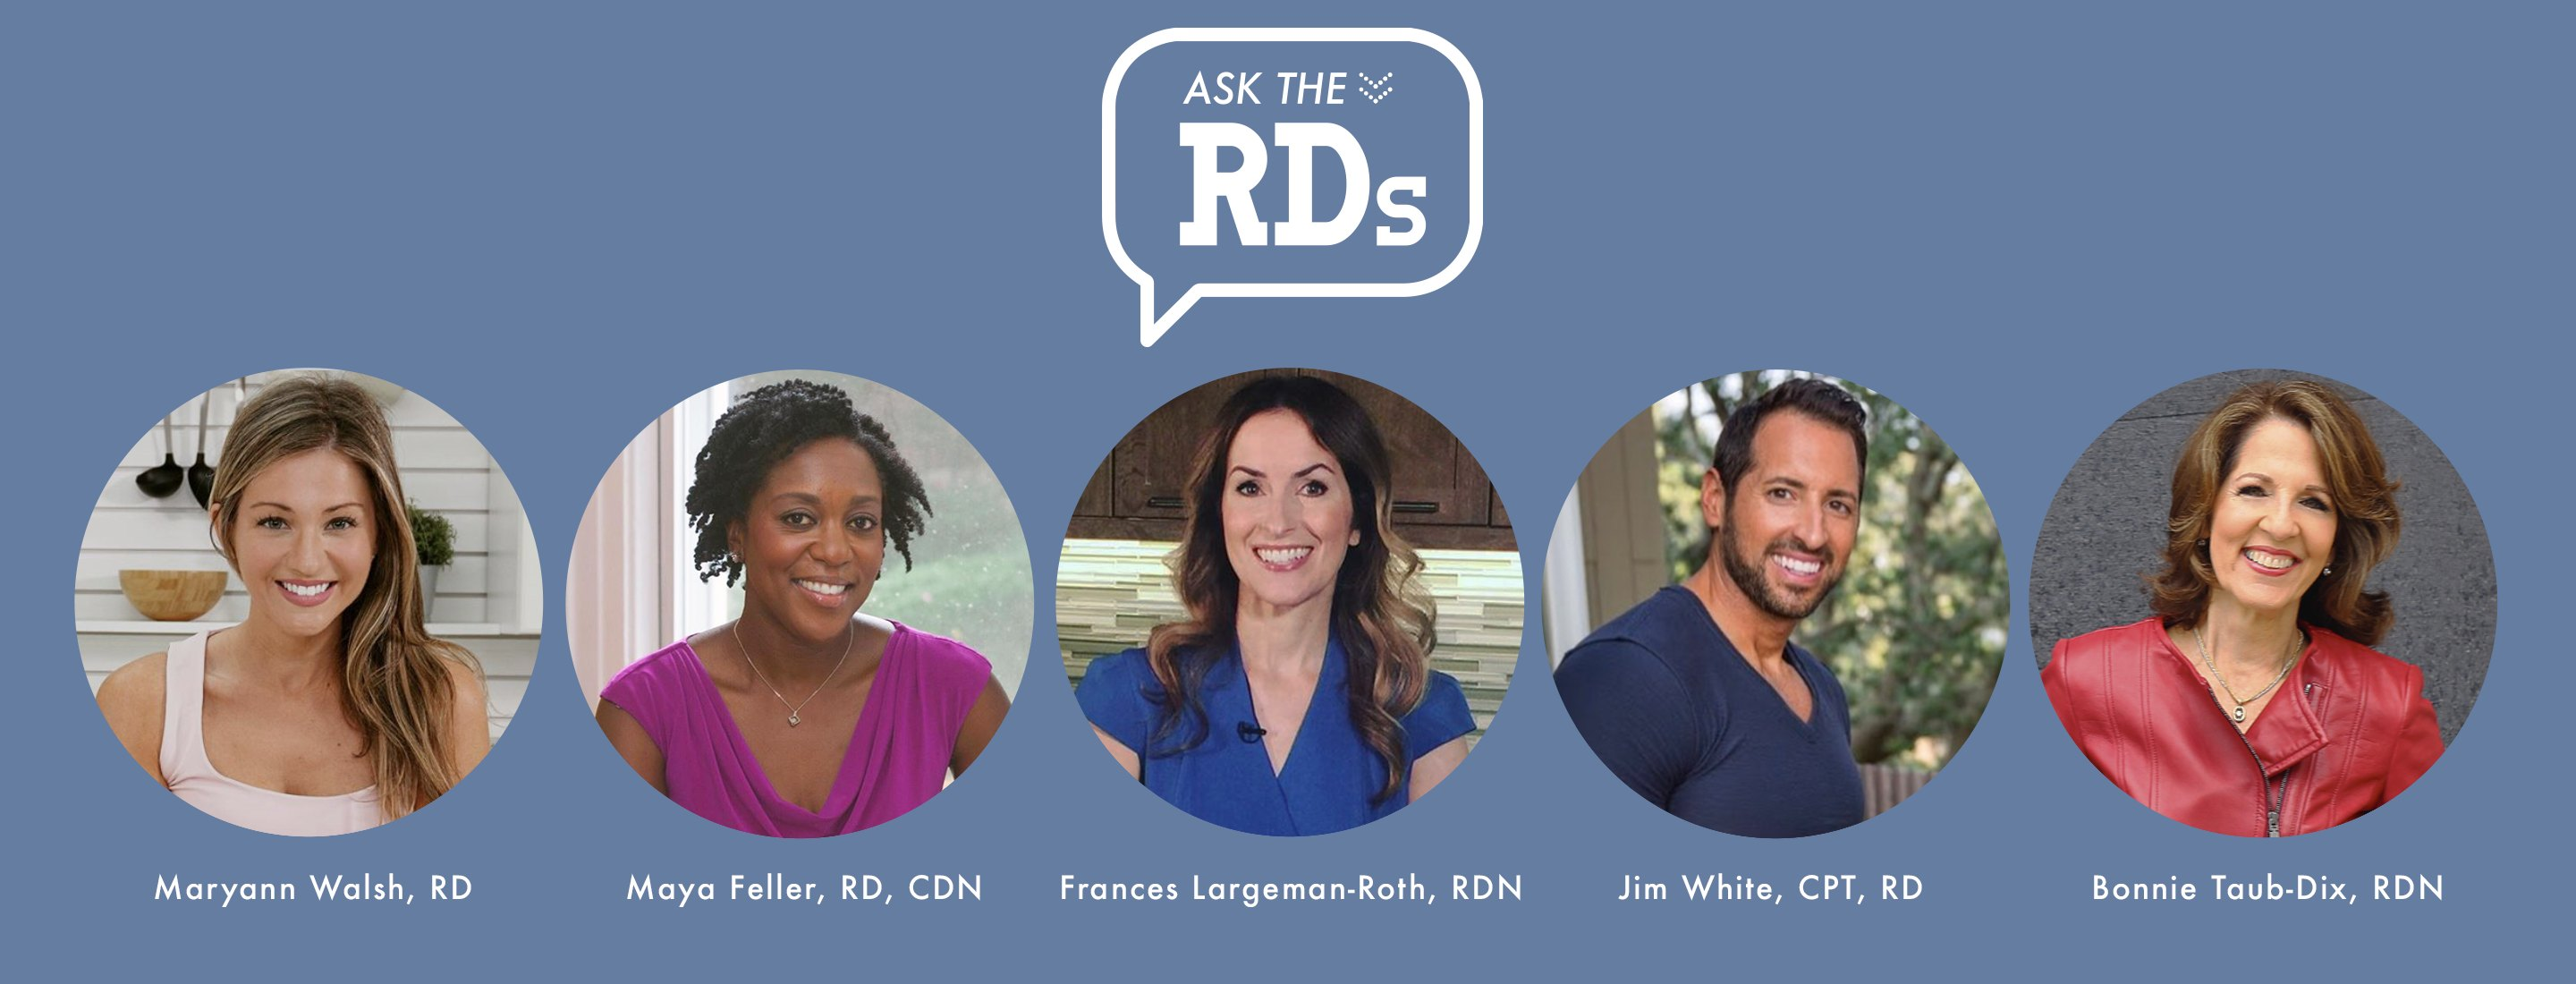 panel of registered dietitians for Ask the RDs